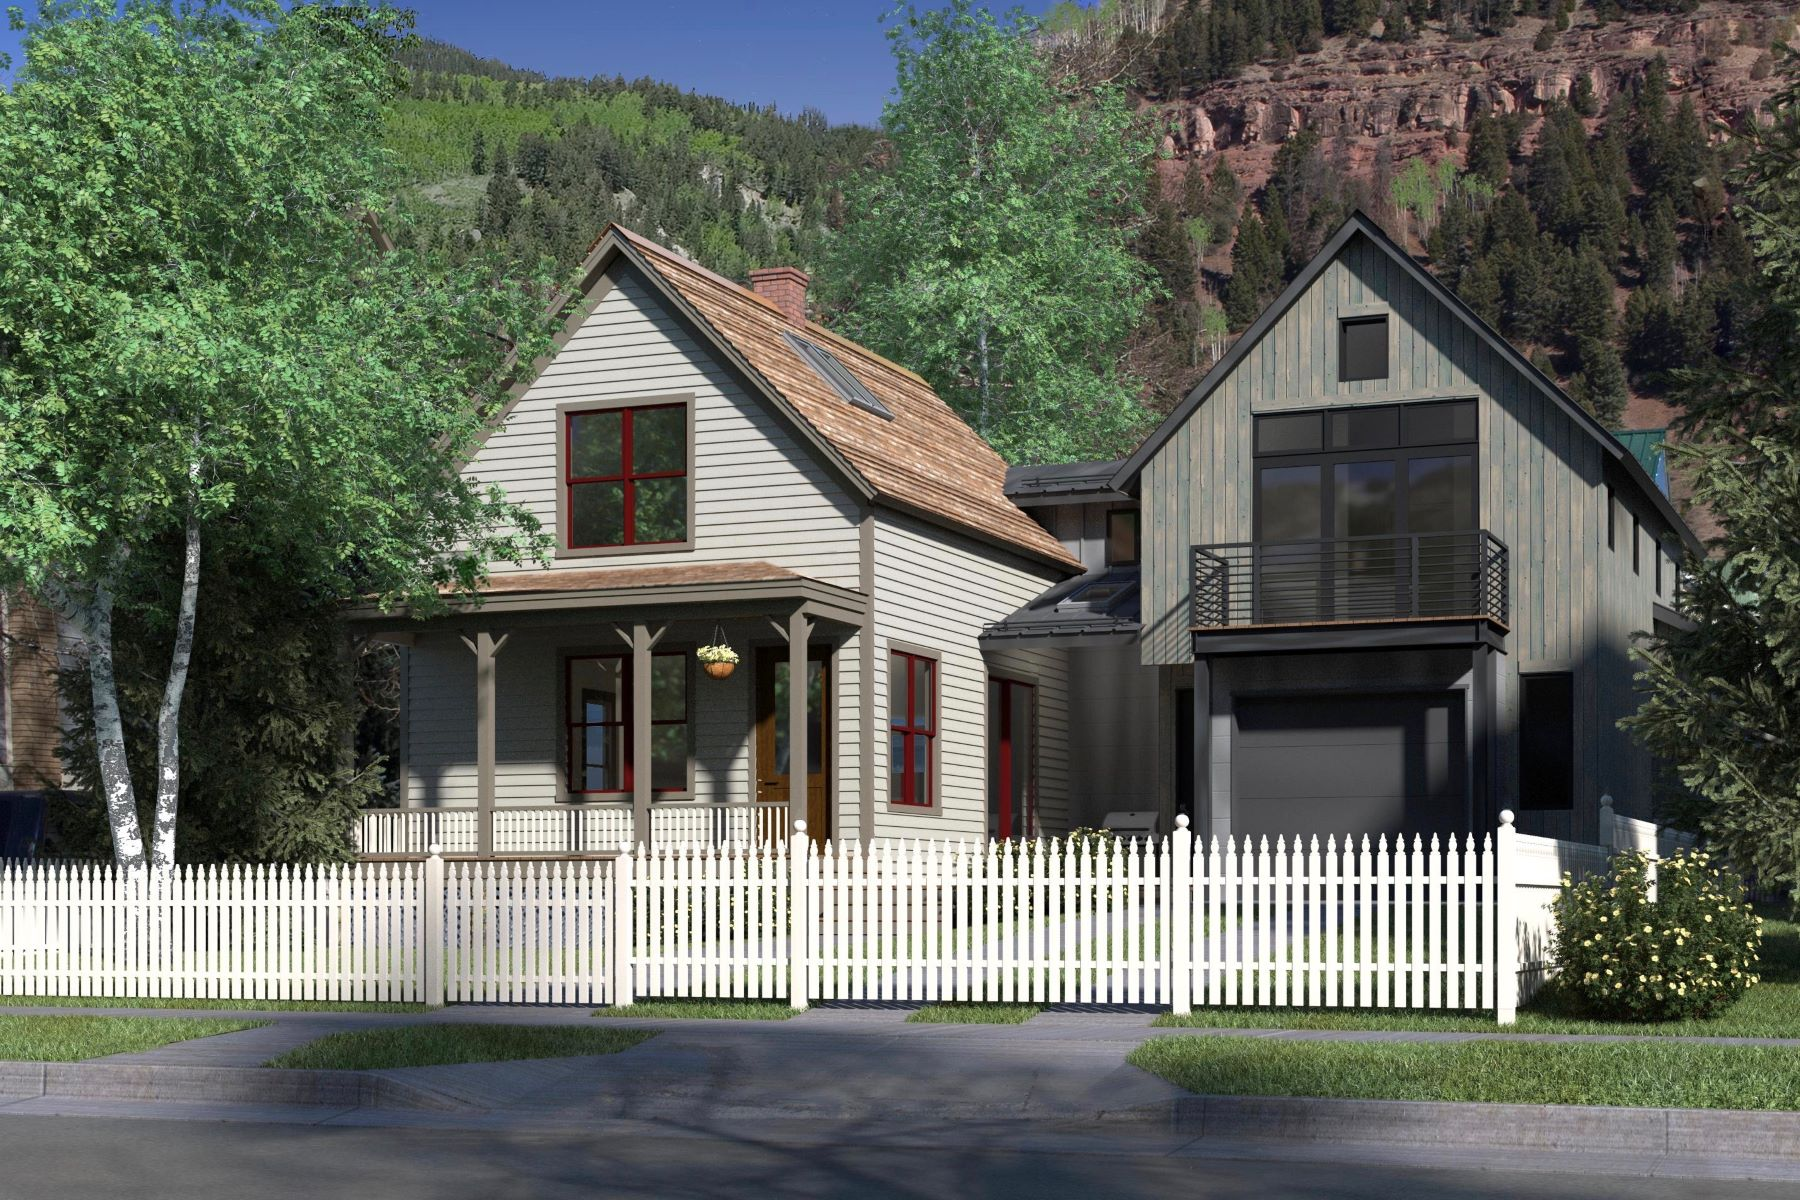 Casa Unifamiliar por un Venta en 547 West Pacific Avenue Telluride, Colorado, 81435 Estados Unidos